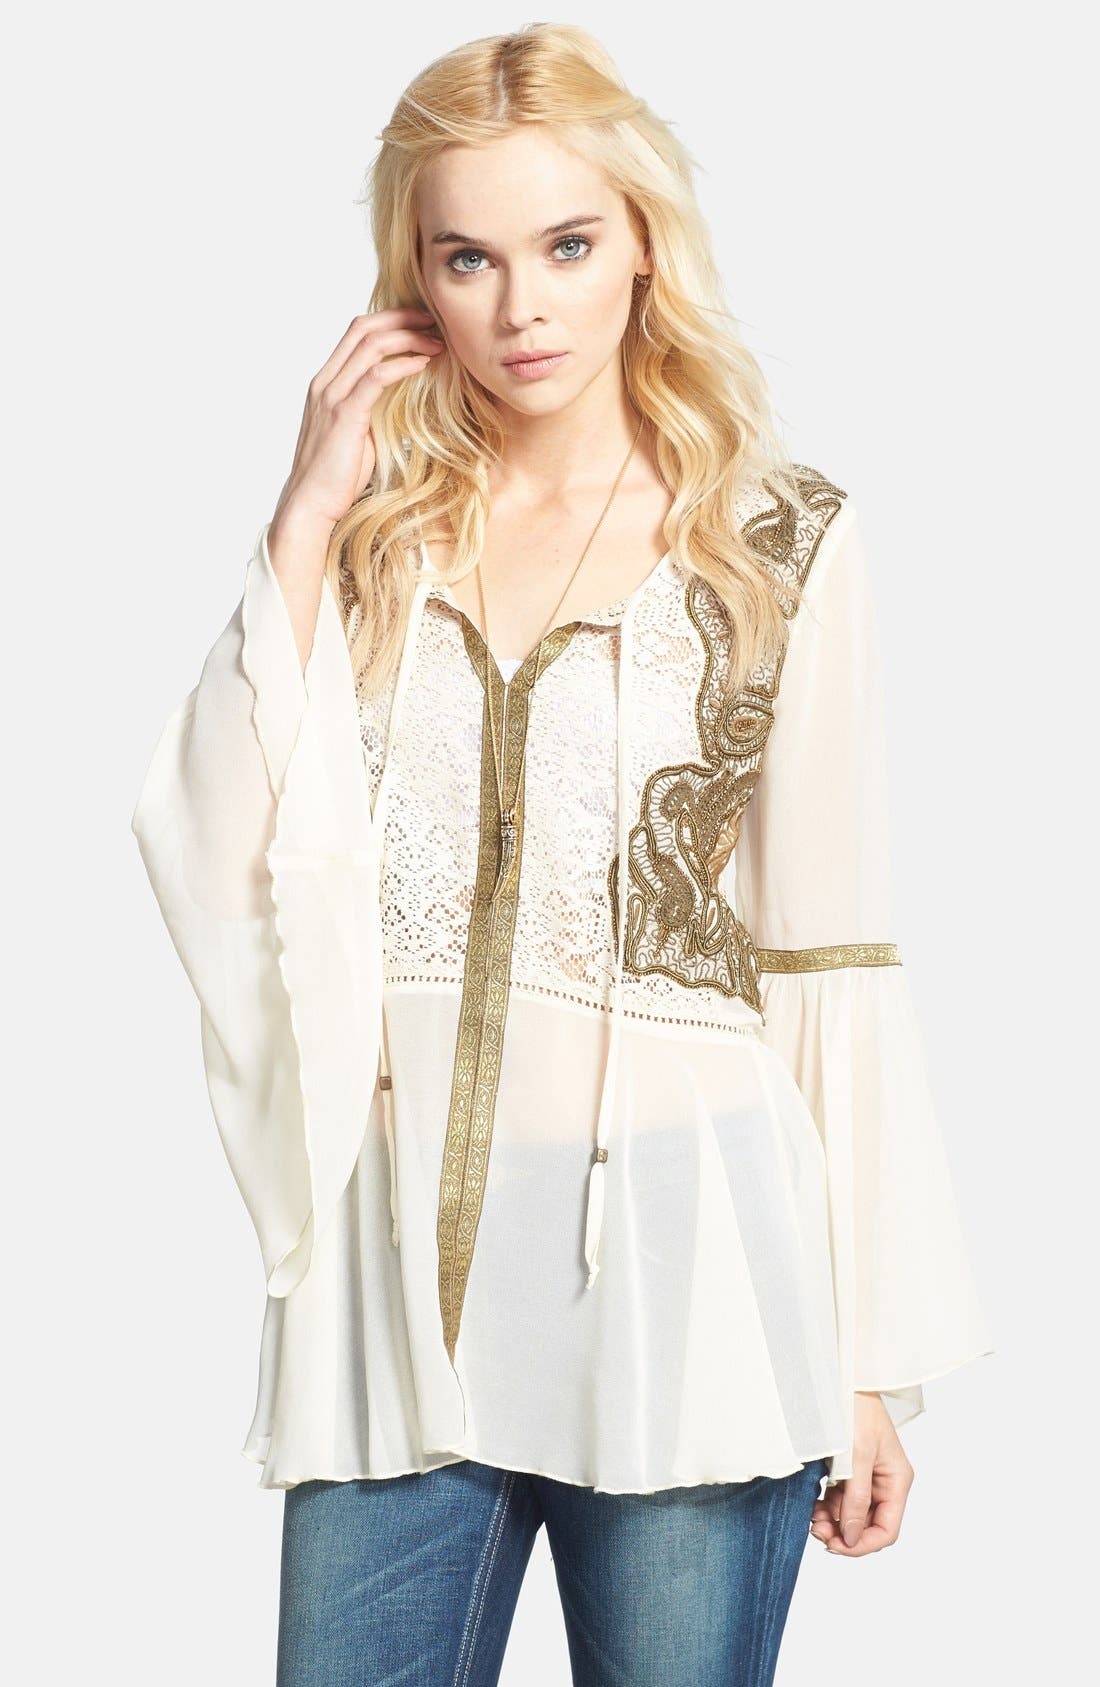 Alternate Image 1 Selected - Free People 'Golden Moments' Embroidered Lace Inset Tunic